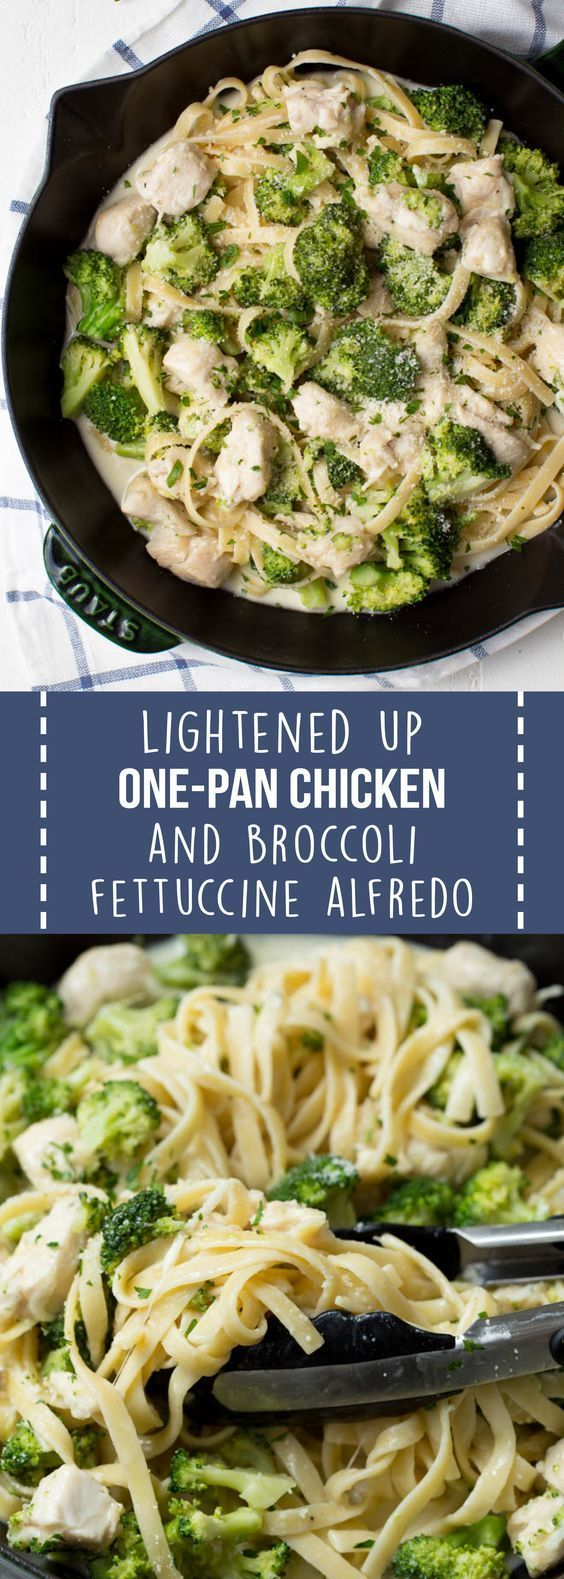 Lightened Up One Pan Chicken and Broccoli Fettuccine Alfredo is a healthier twist on classic chicken Alfredo pasta It is cooked in one pan and lightened up to make it an...